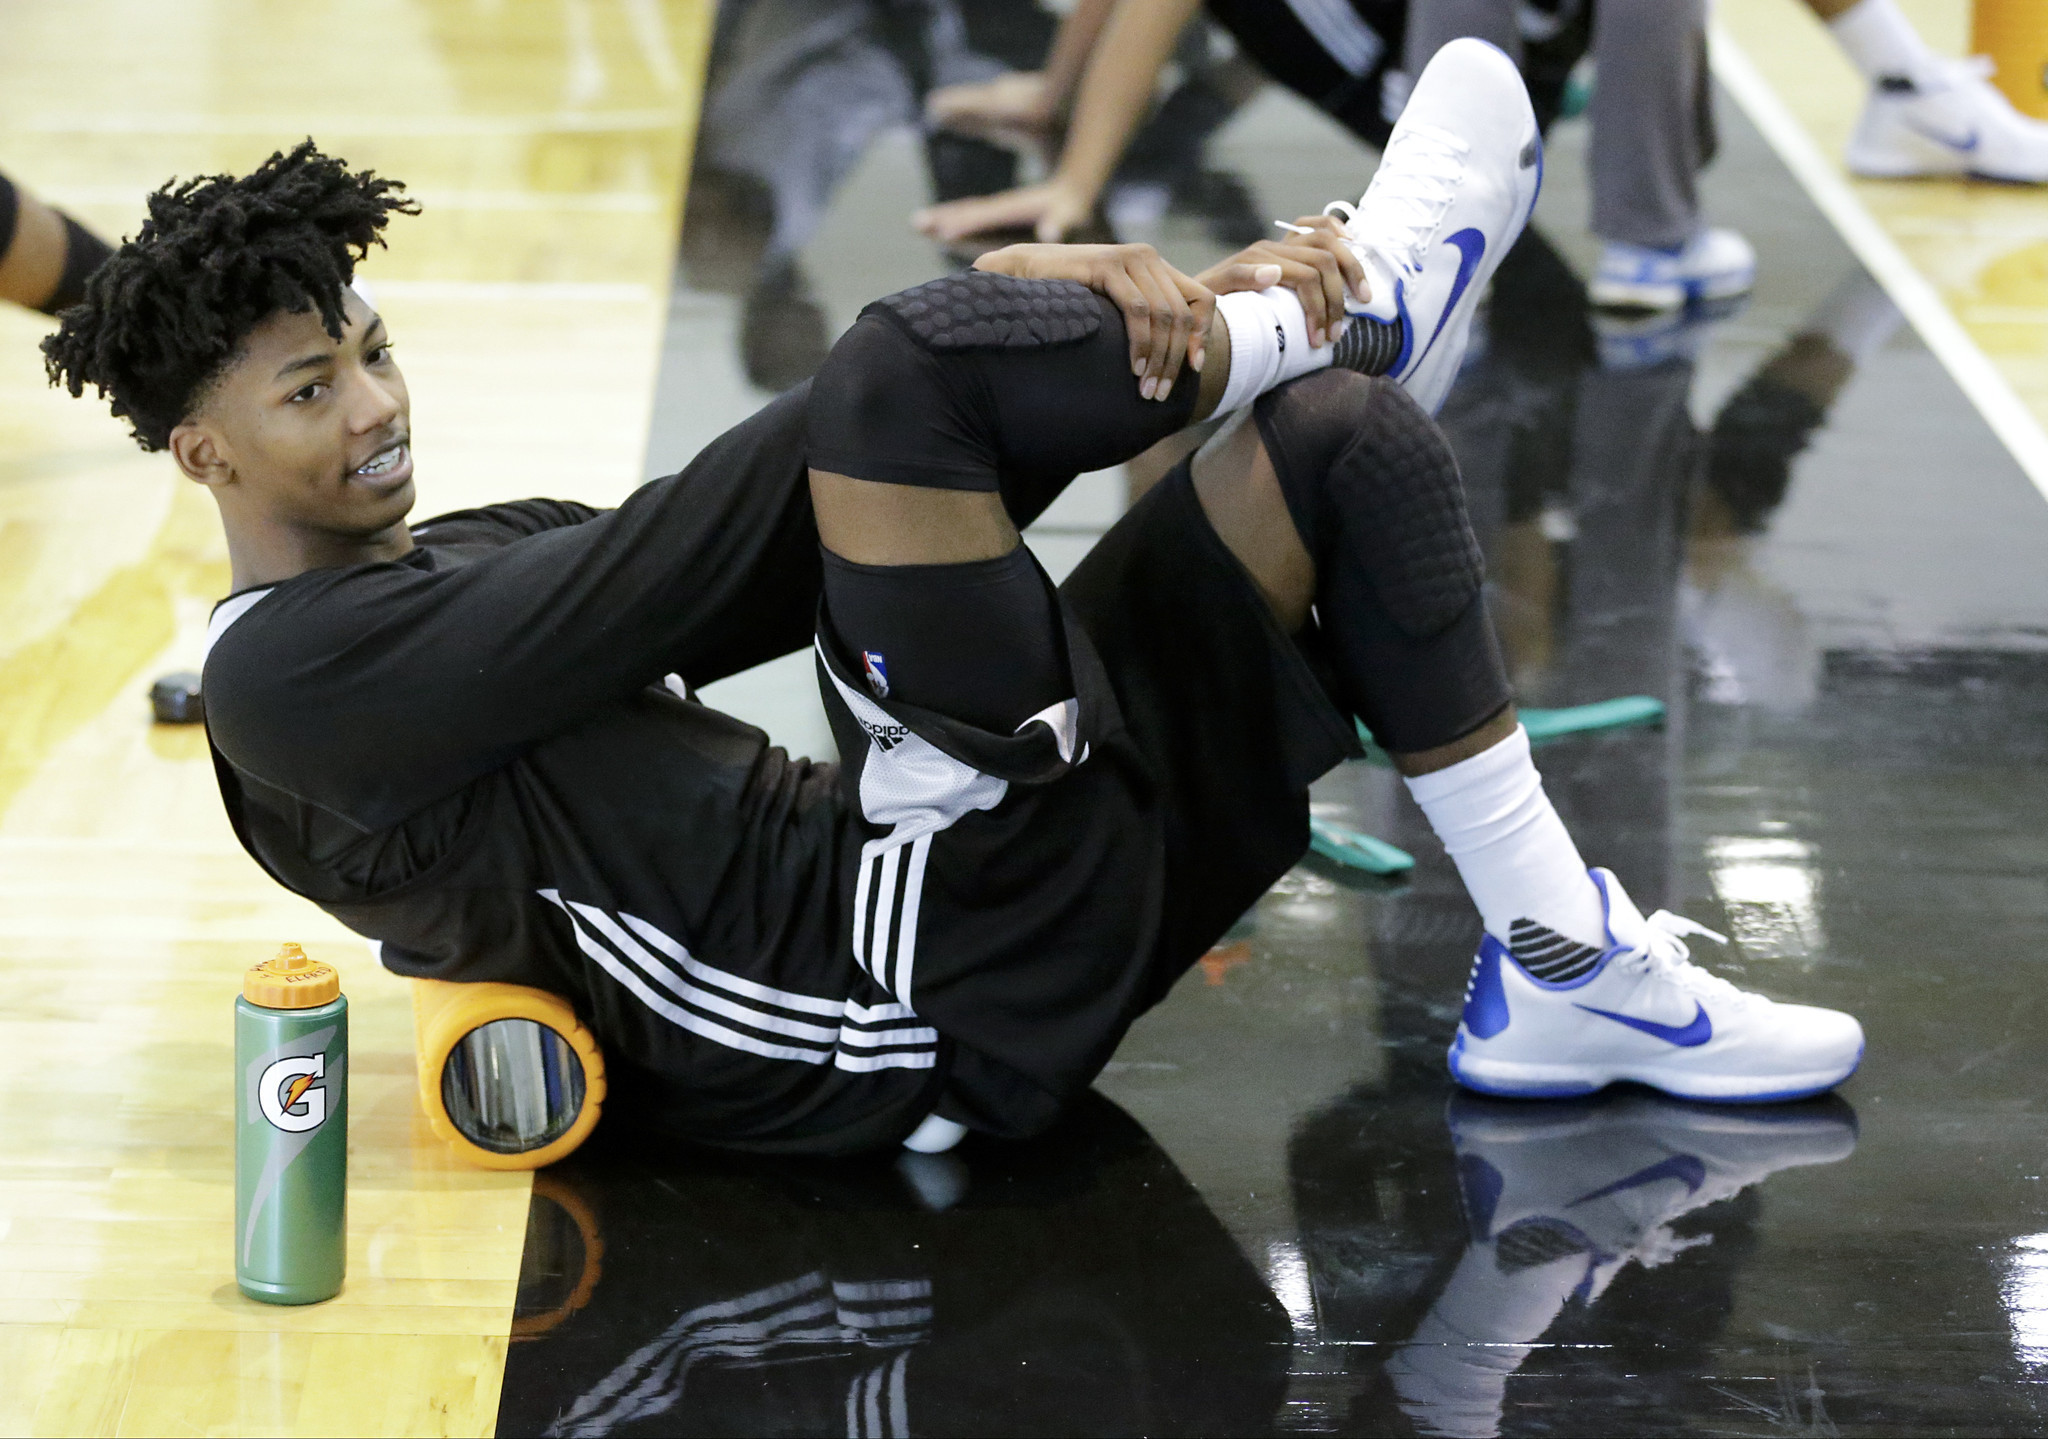 Orlando Magic Point Guard Elfrid Payton Needs To Take More Of His